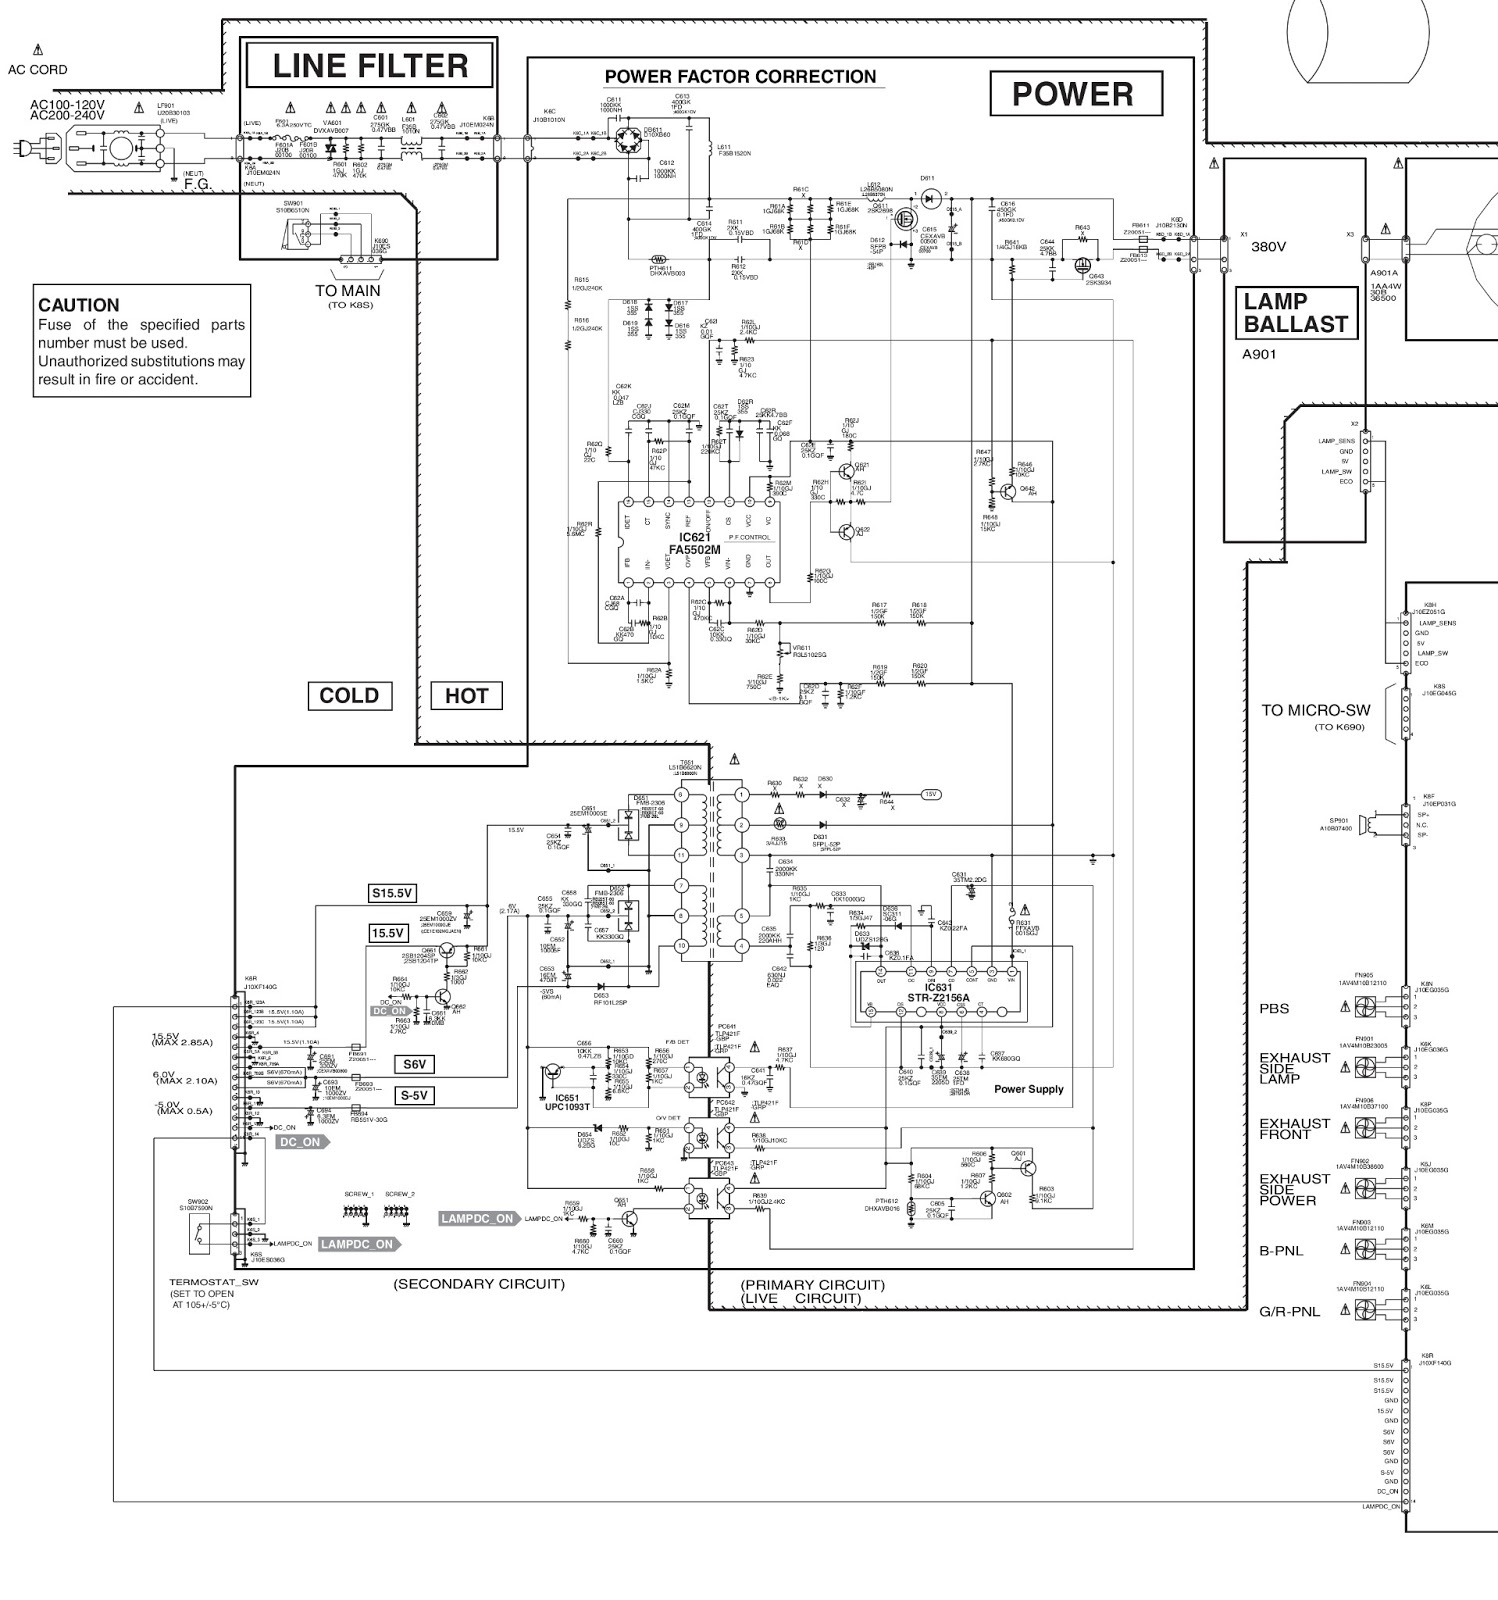 hight resolution of sanyo plc xu87 projector power supply schematic diagrampower side a